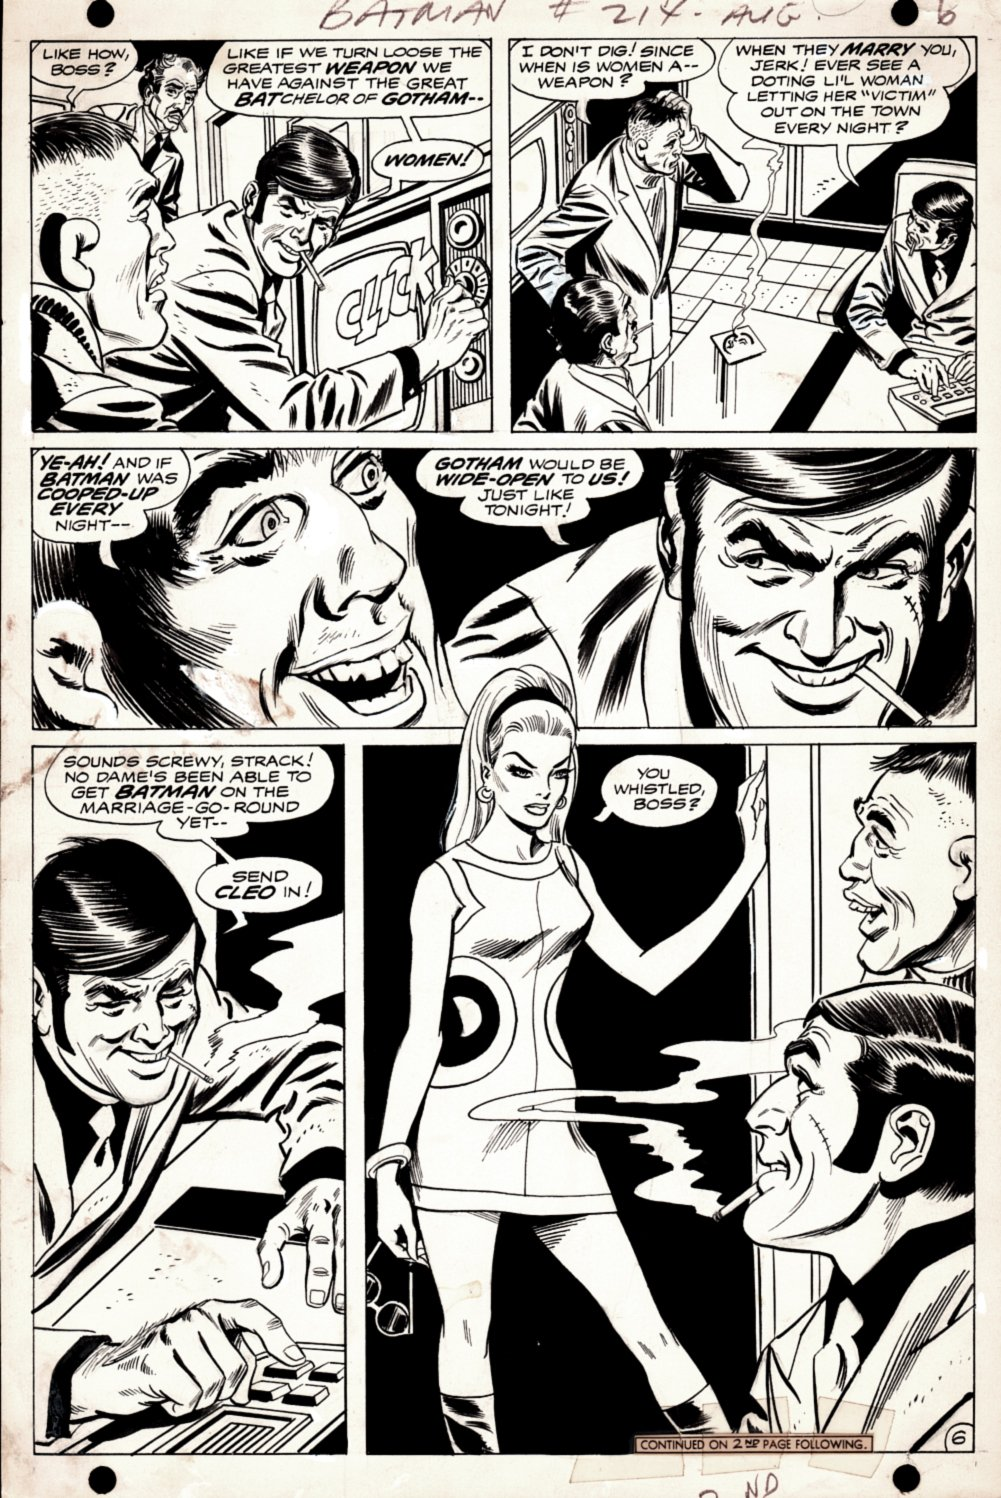 Batman 214 p 6 (SOLD LIVE ON 'DUELING DEALERS OF COMIC ART' EPISODE #28 PODCAST ON 8-2-2021 (RE-WATCH THIS FUNNY ART SELLING SHOW HERE)